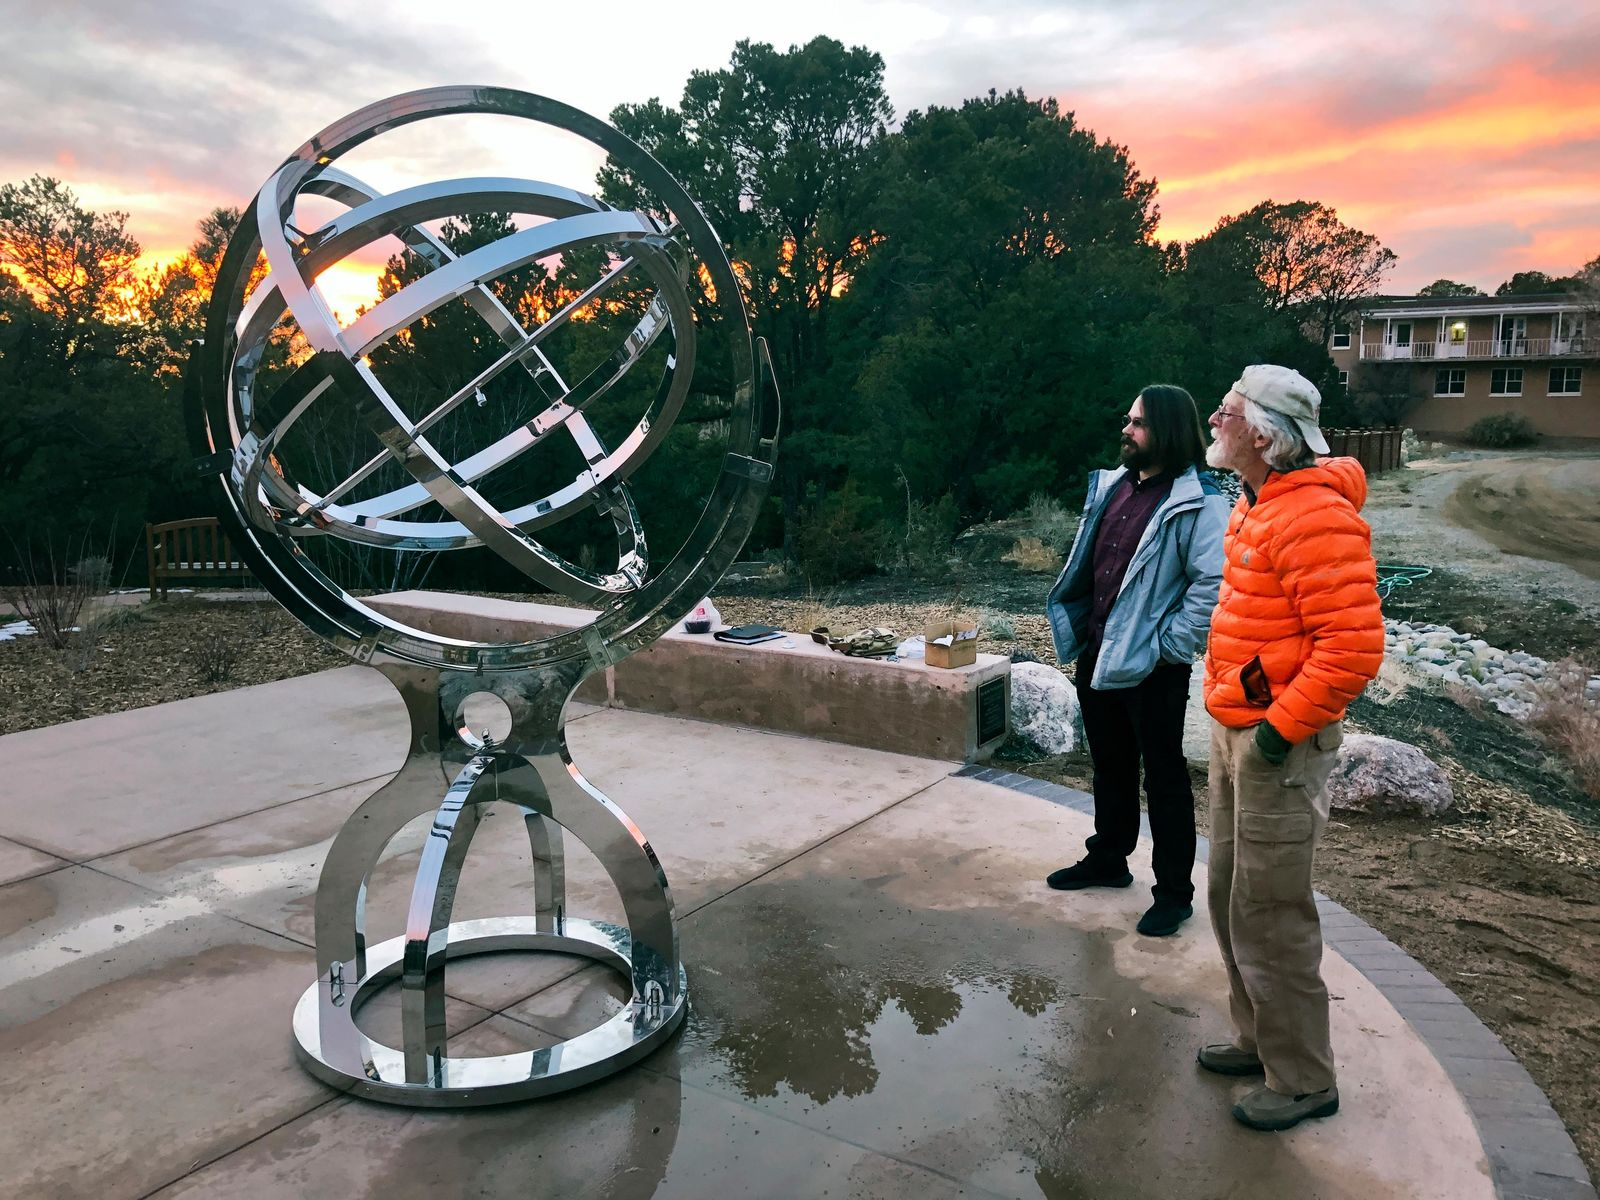 In this Dec. 11, 2019 photo Bill Donahue, right, a retired teacher and director of laboratories at St. John's College, and student Devin Ketch use an armillary sphere to track planetary rotations and explore the history of astronomy in Santa Fe, N.M. The unique precision-steel replica of an instrument created by Danish astonomer Tycho Brahe was commissioned by graduates of the college where students trace the evolution of math and science from early civilizations. (AP Photo/Morgan Lee)